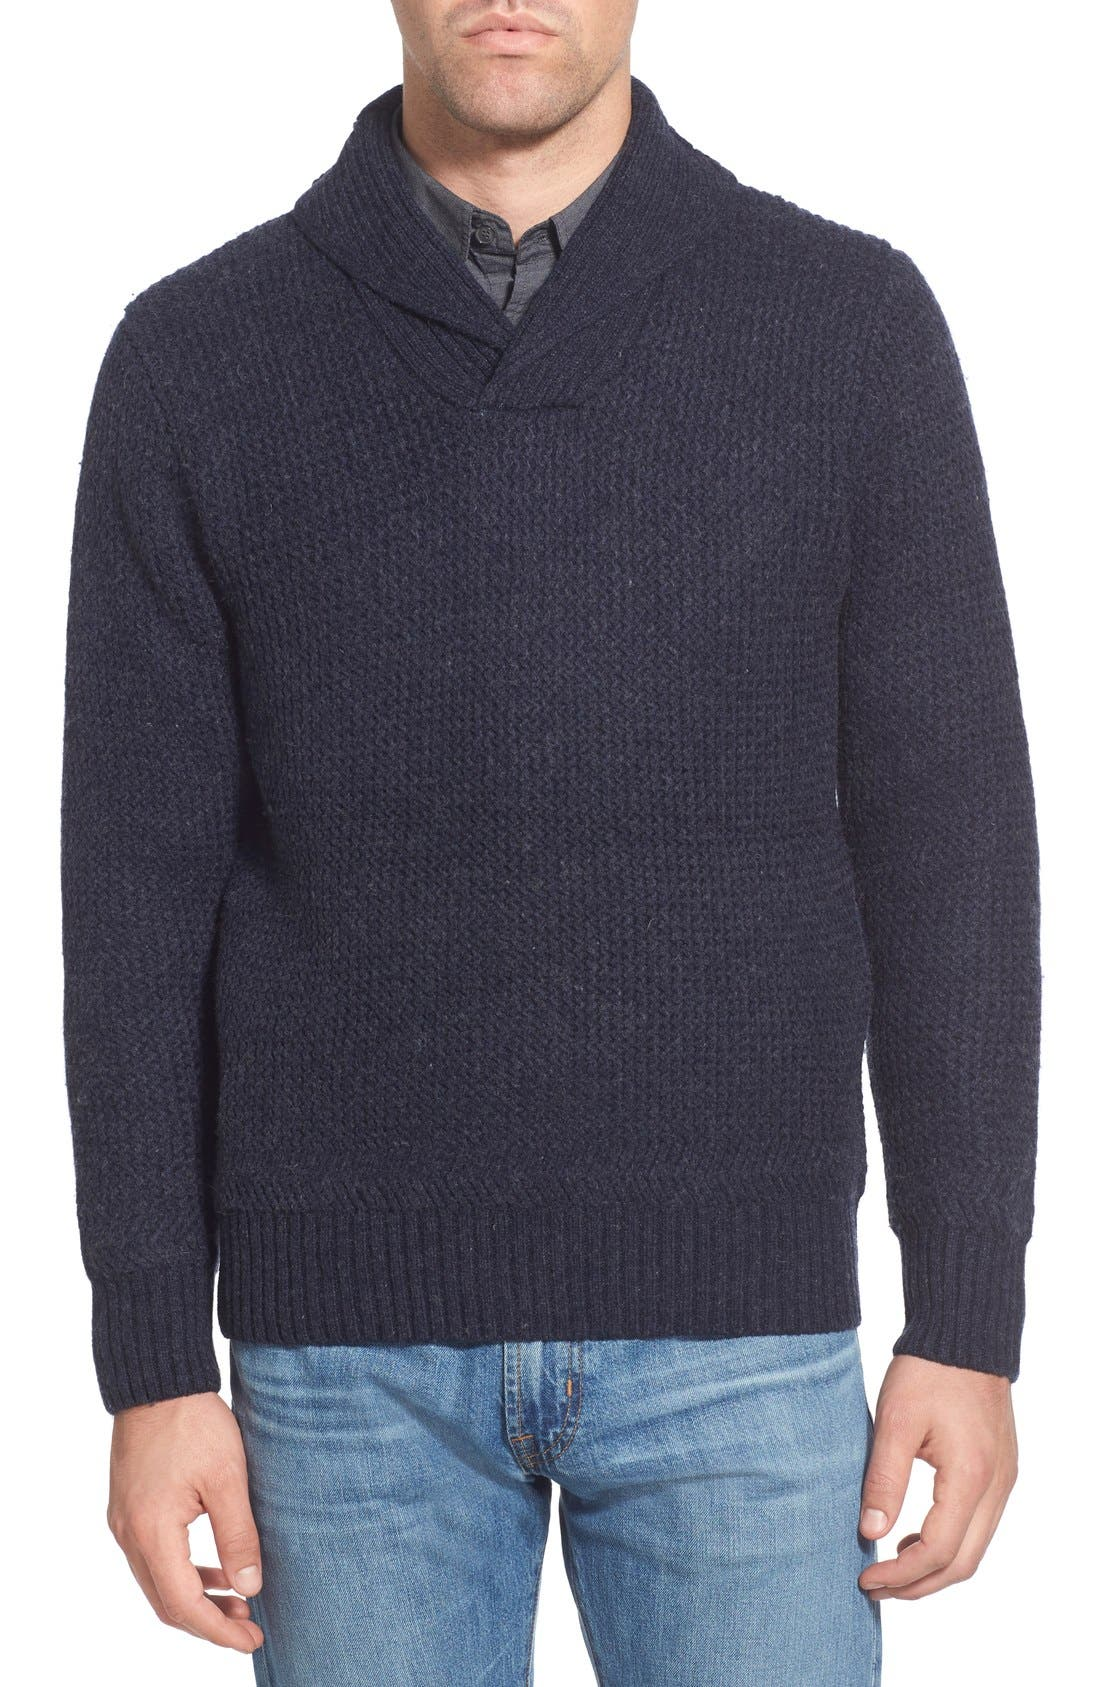 Regular Fit Shawl Collar Sweater,                             Main thumbnail 1, color,                             Navy